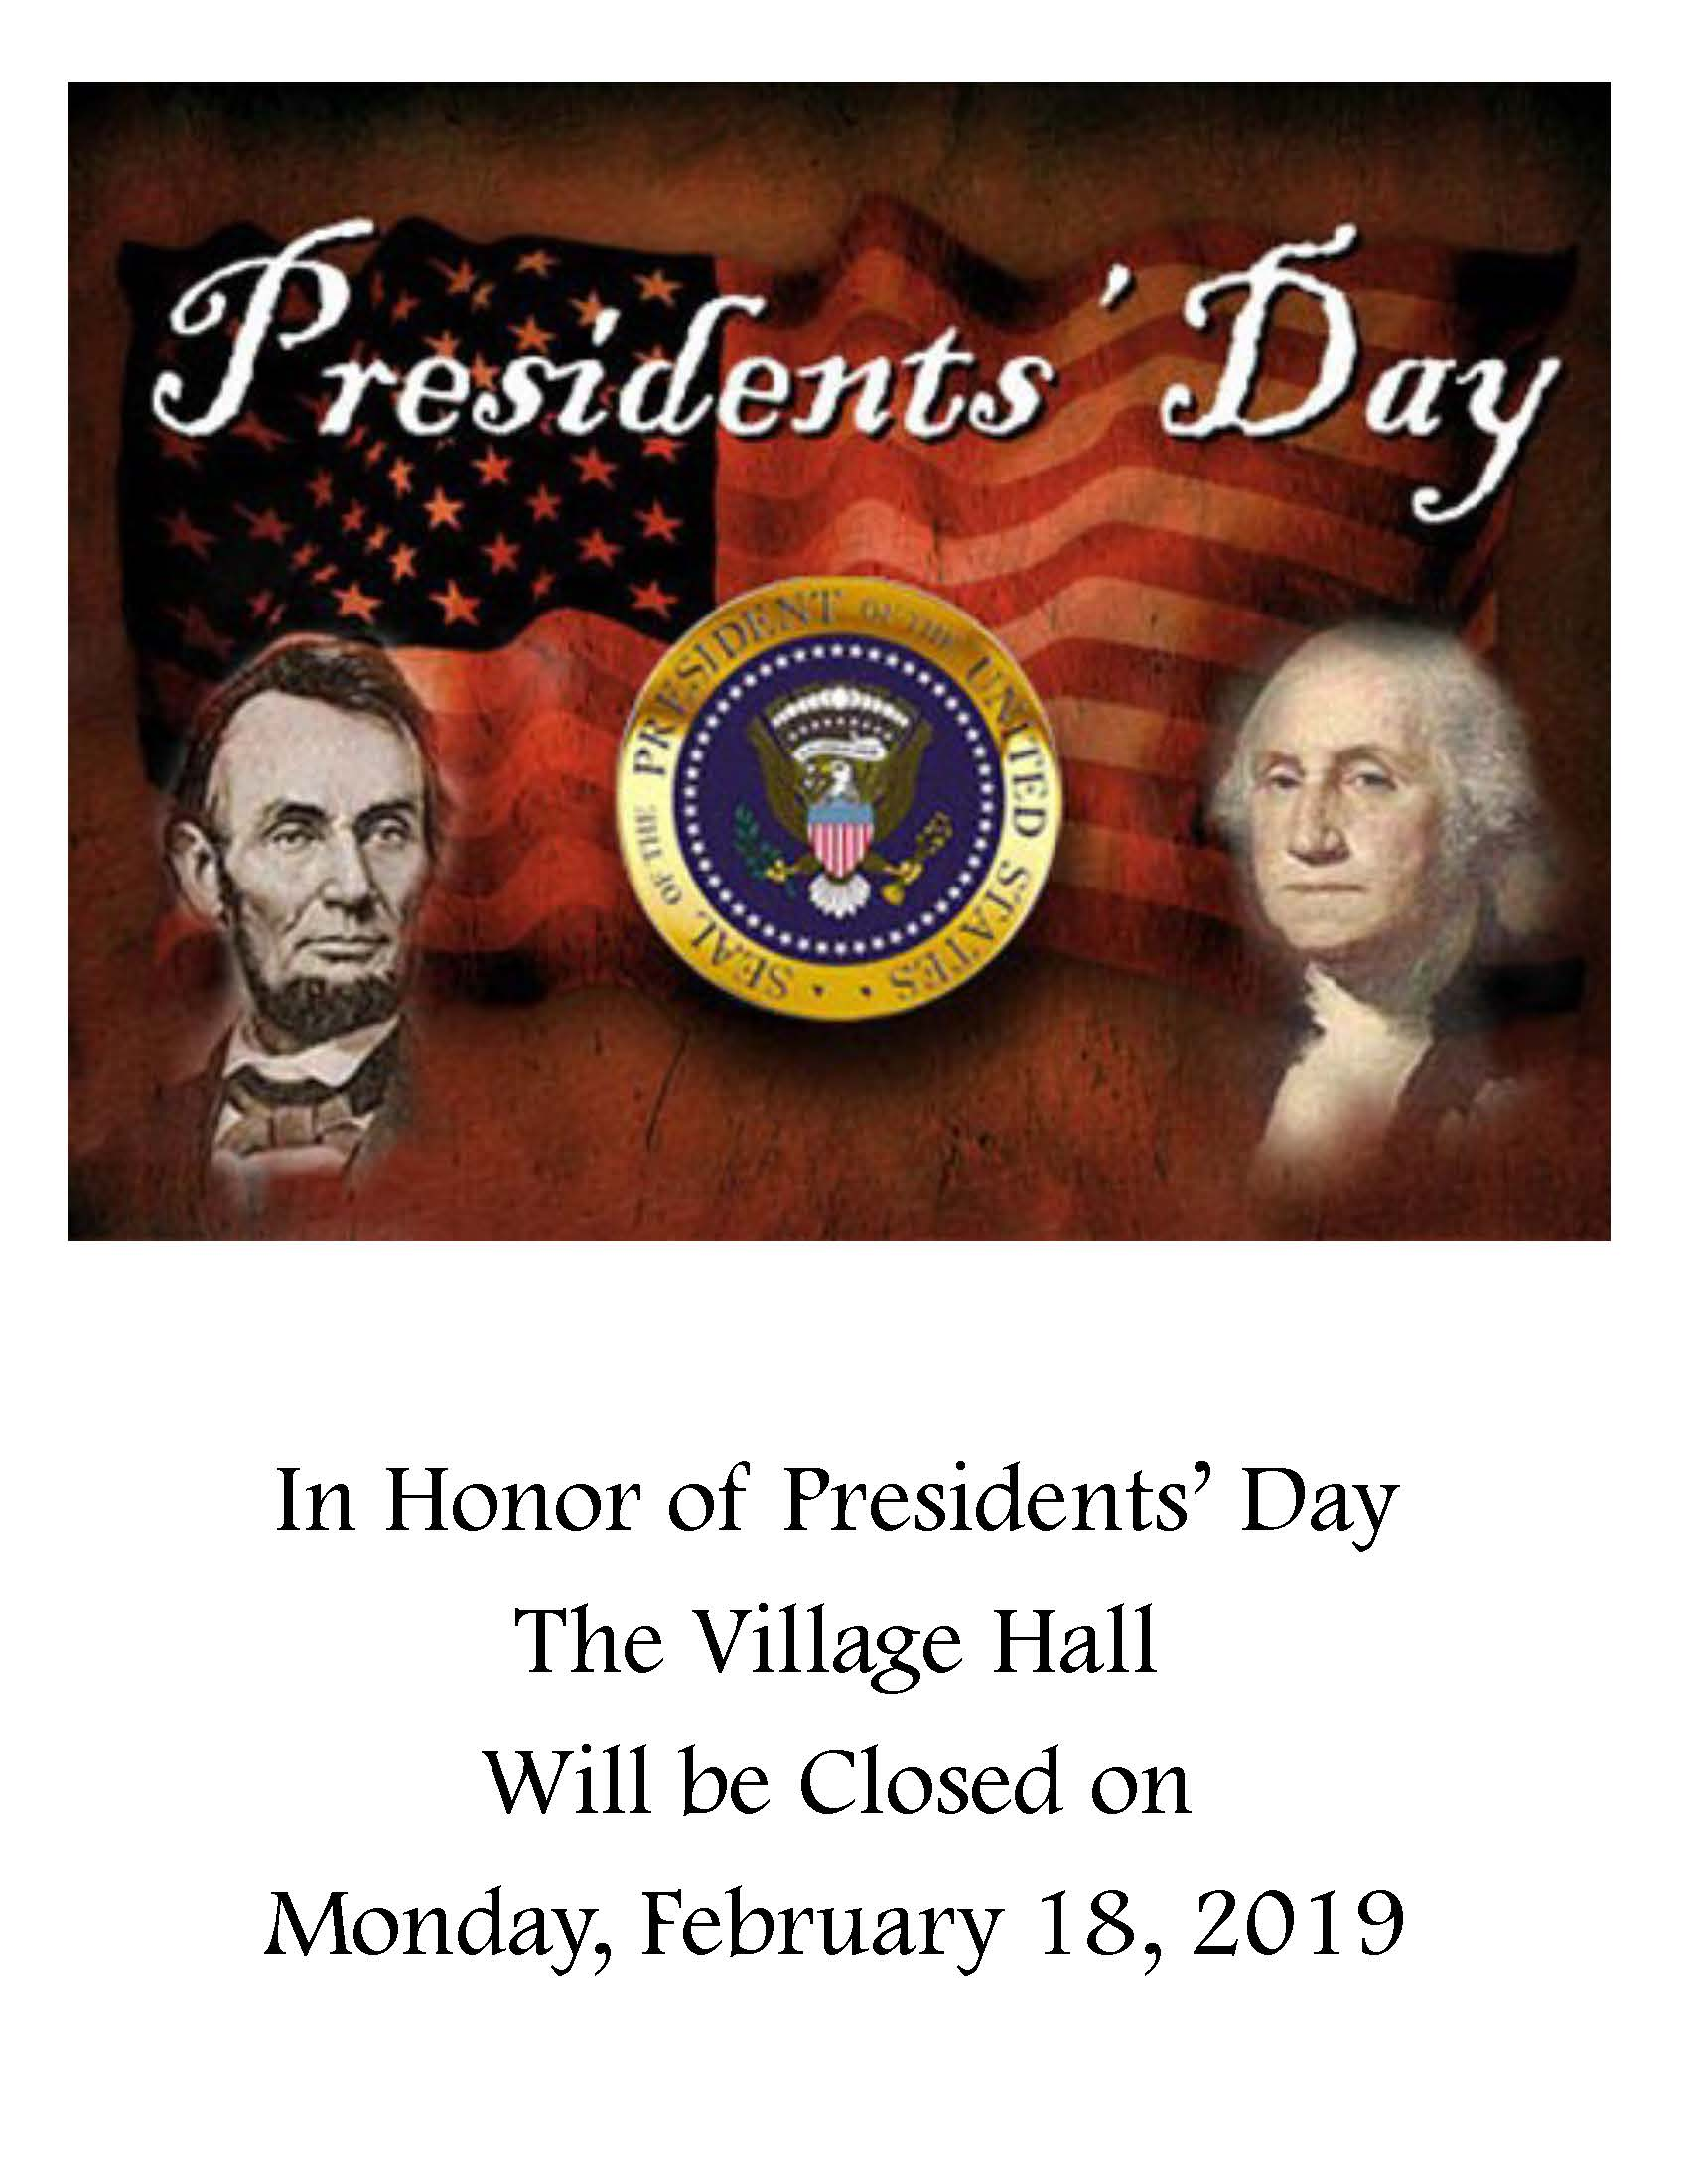 Village Hall_Presidents Day